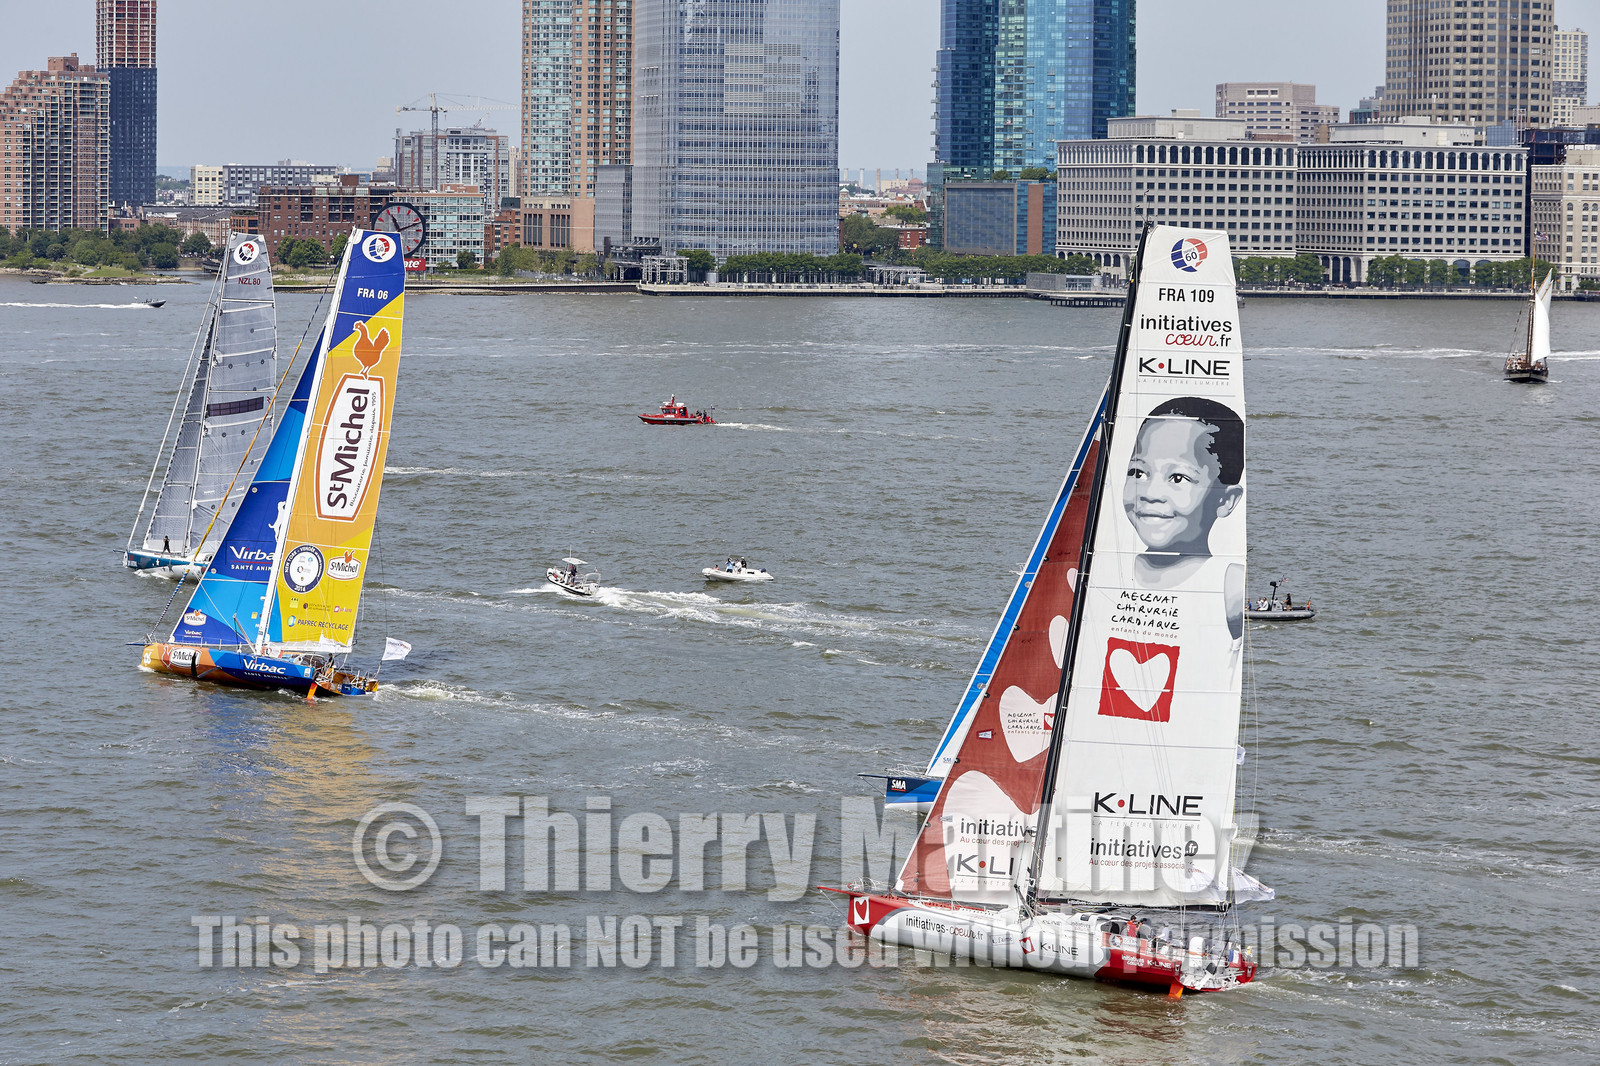 Start of NEW YORK-VENDEE (Les Sables d'Olonne) presented by Currency House & SpaceCode.